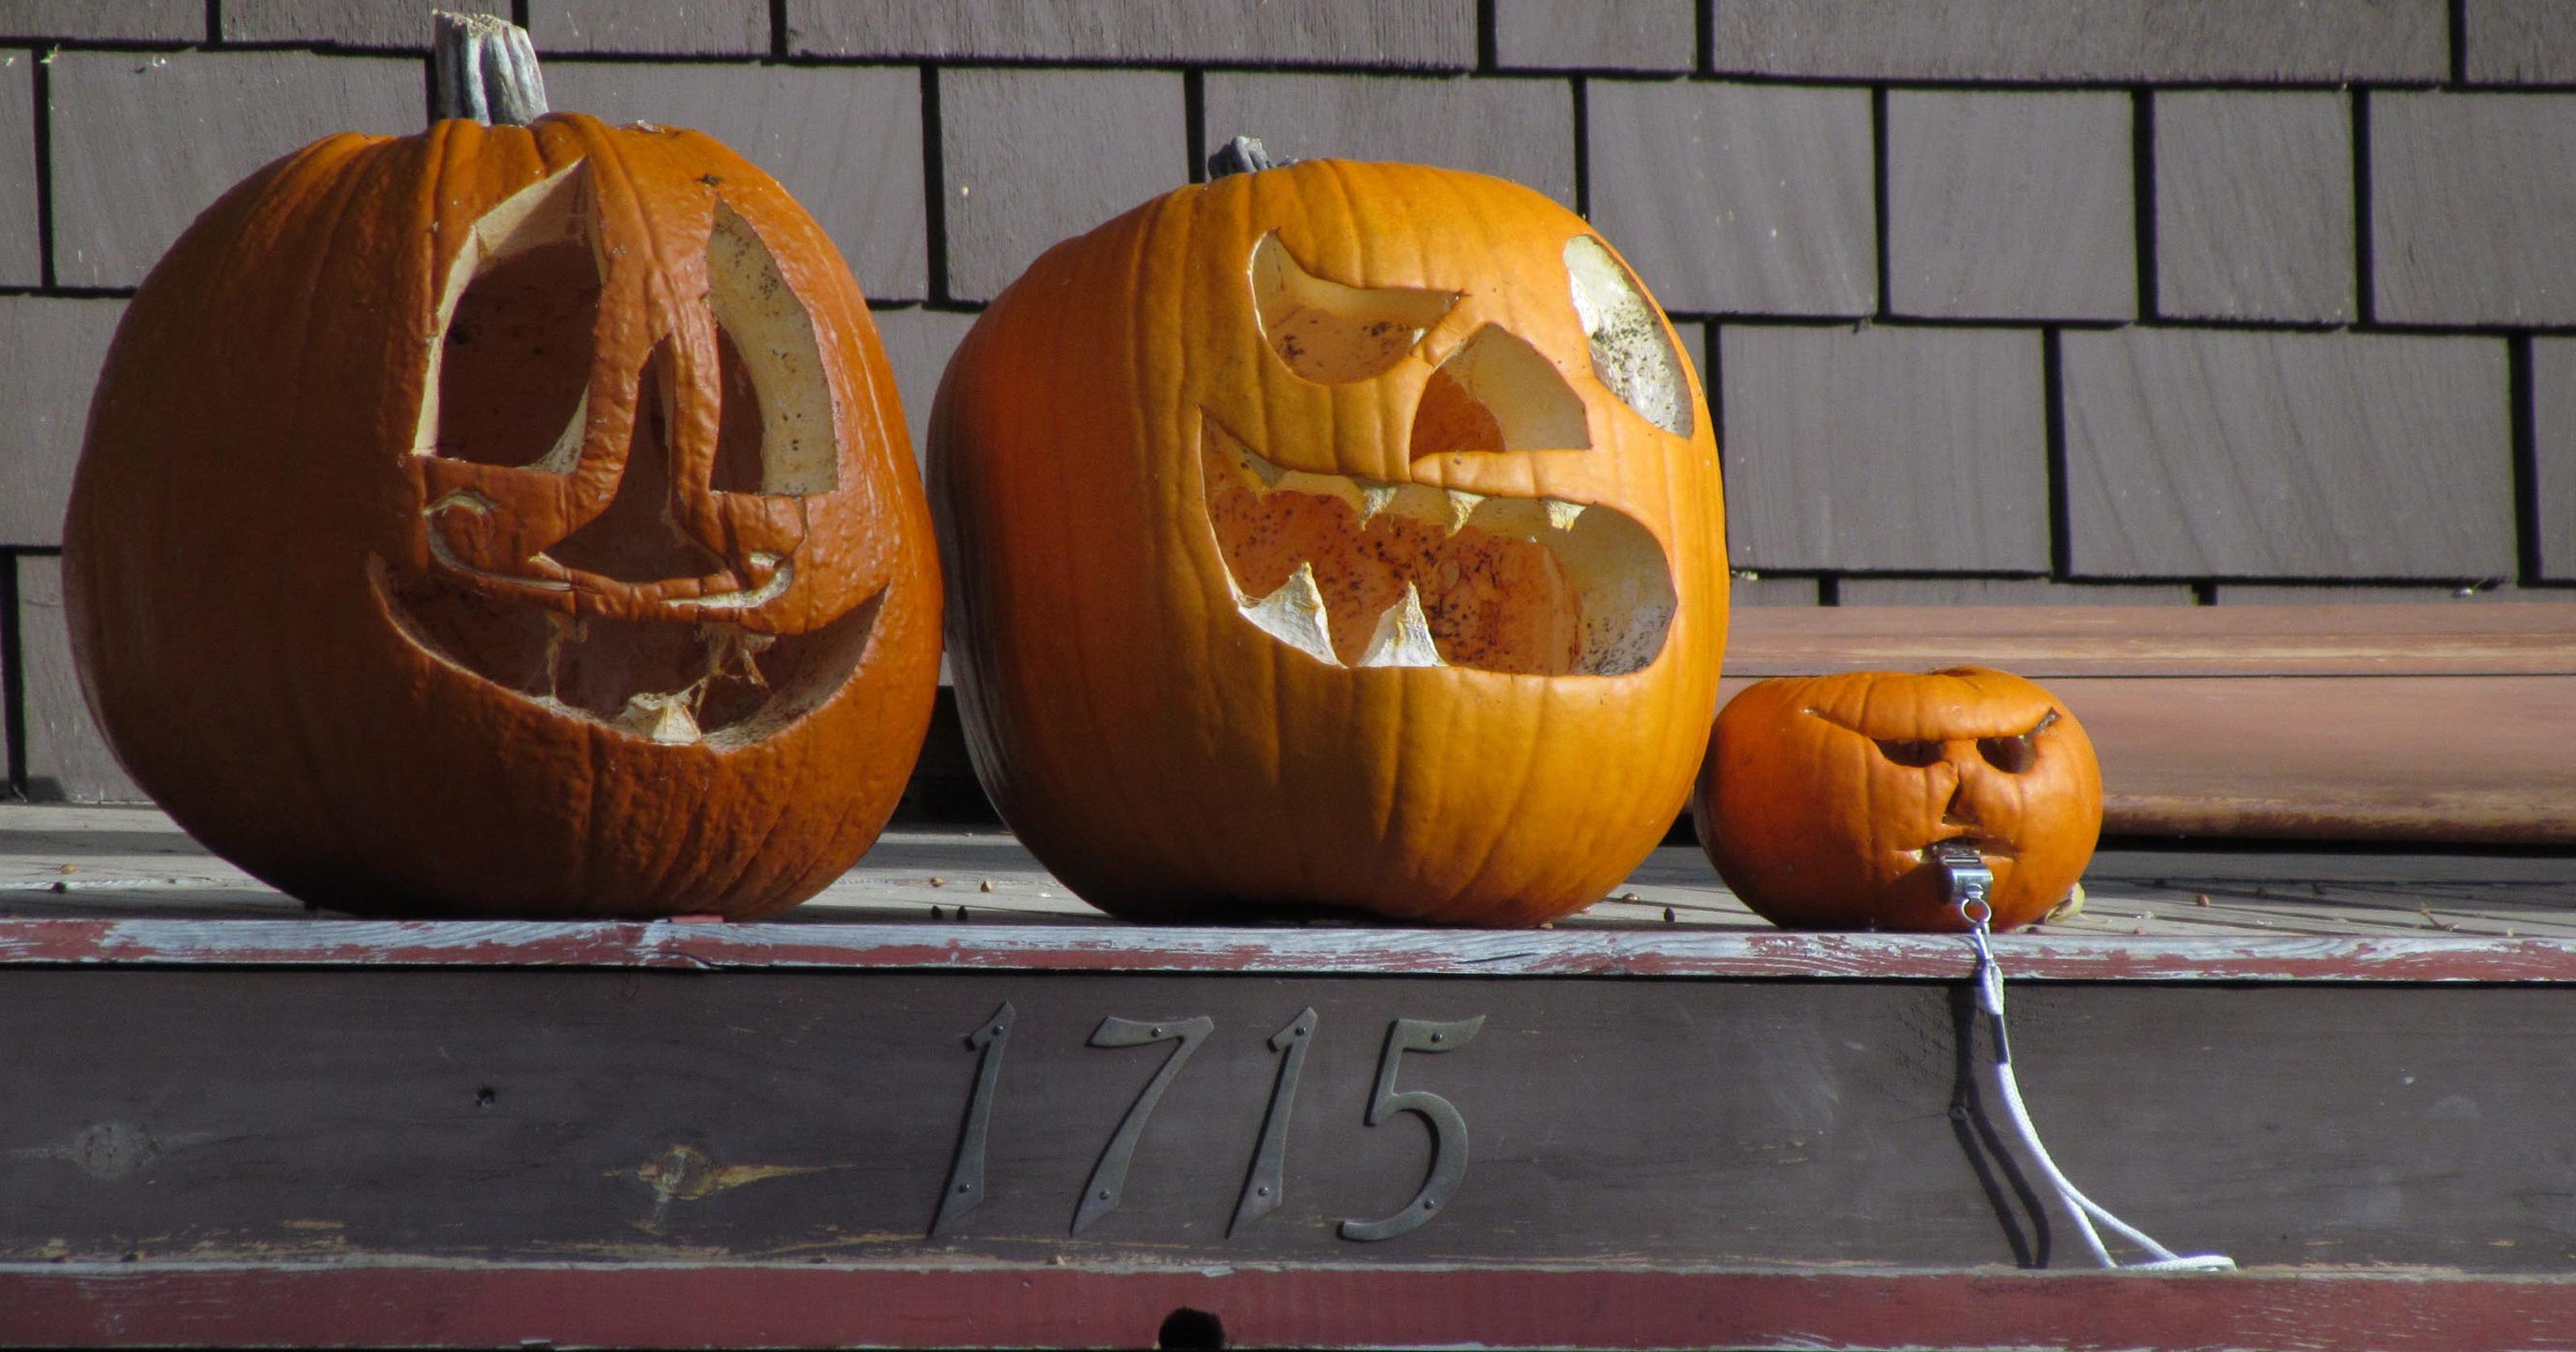 Haunter Pumpkin Carving Ideas 2020 Haunted happenings: A guide to area Halloween events